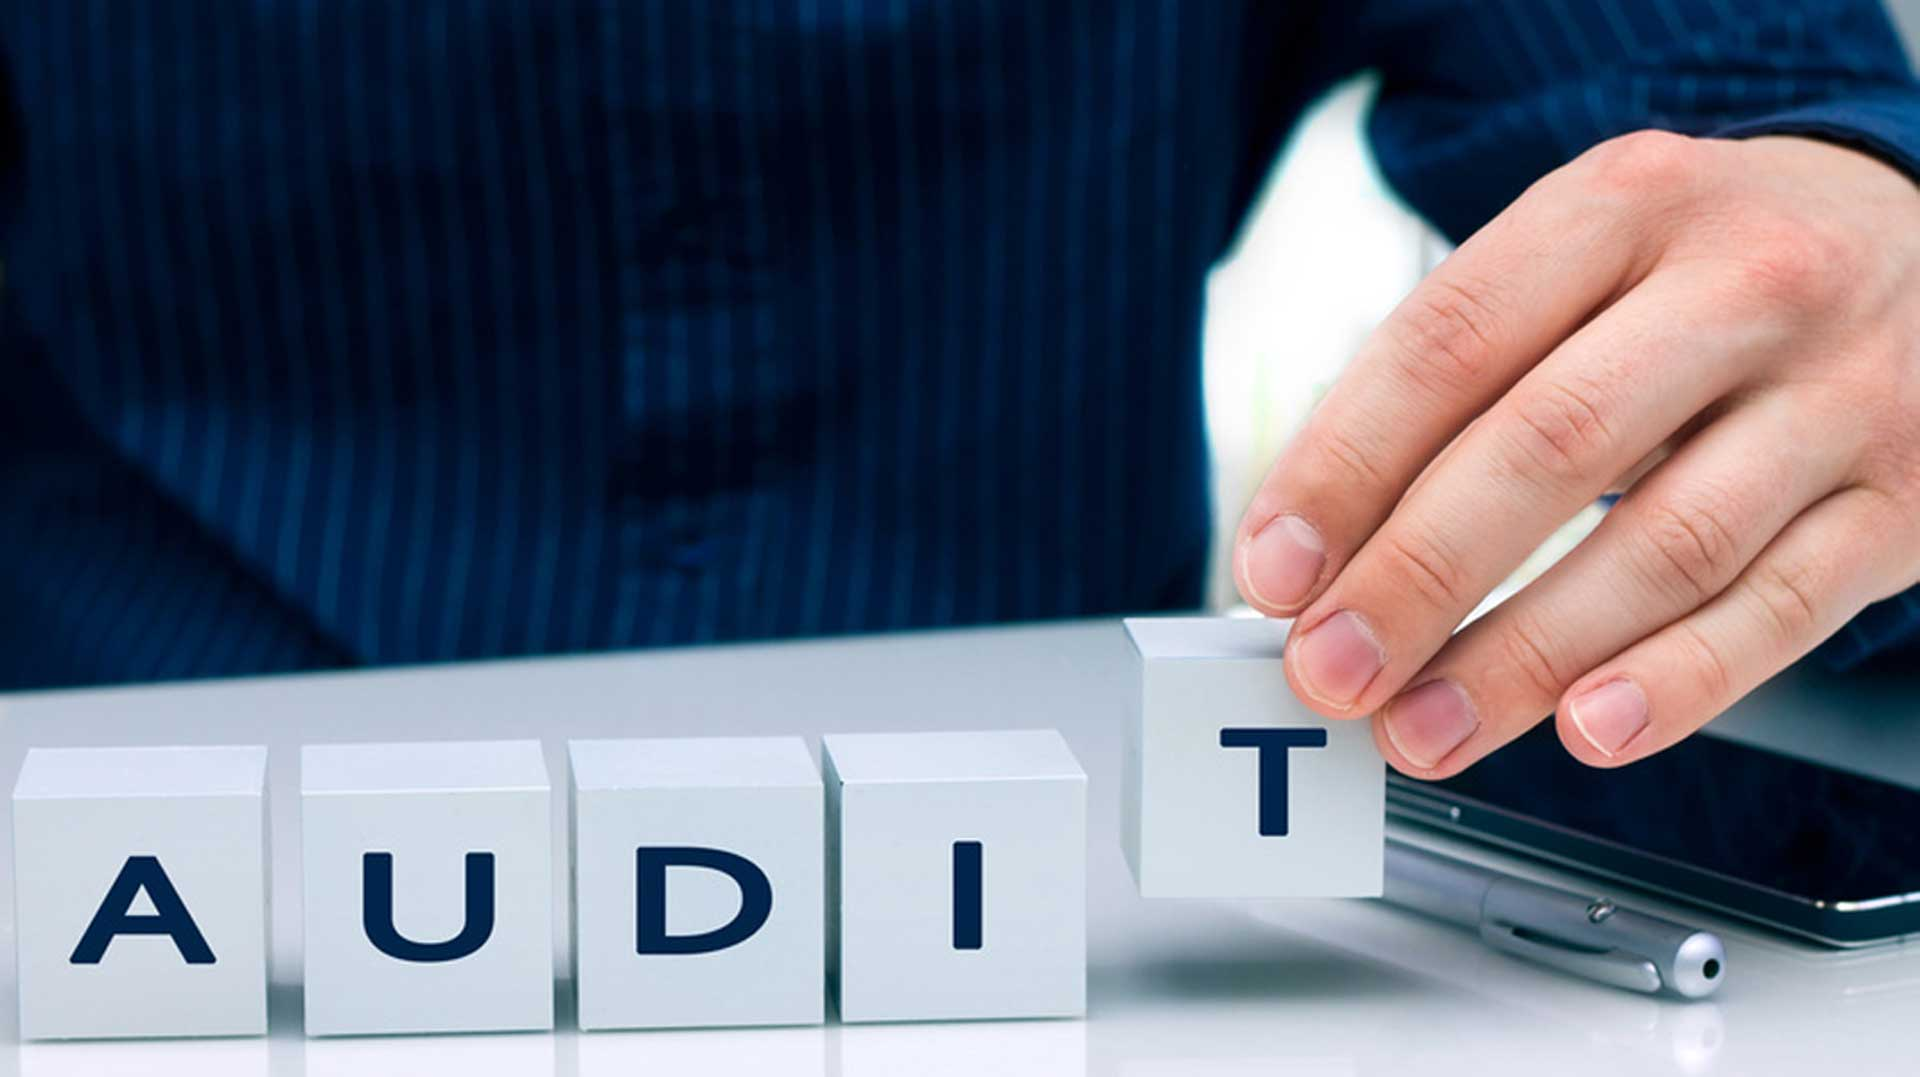 C&N Audit Services located in Kangaroo Point, Brisbane, Queensland offers a full range of Audit Services and assist clients across Australia with a variety of Audit and Assurance needs.